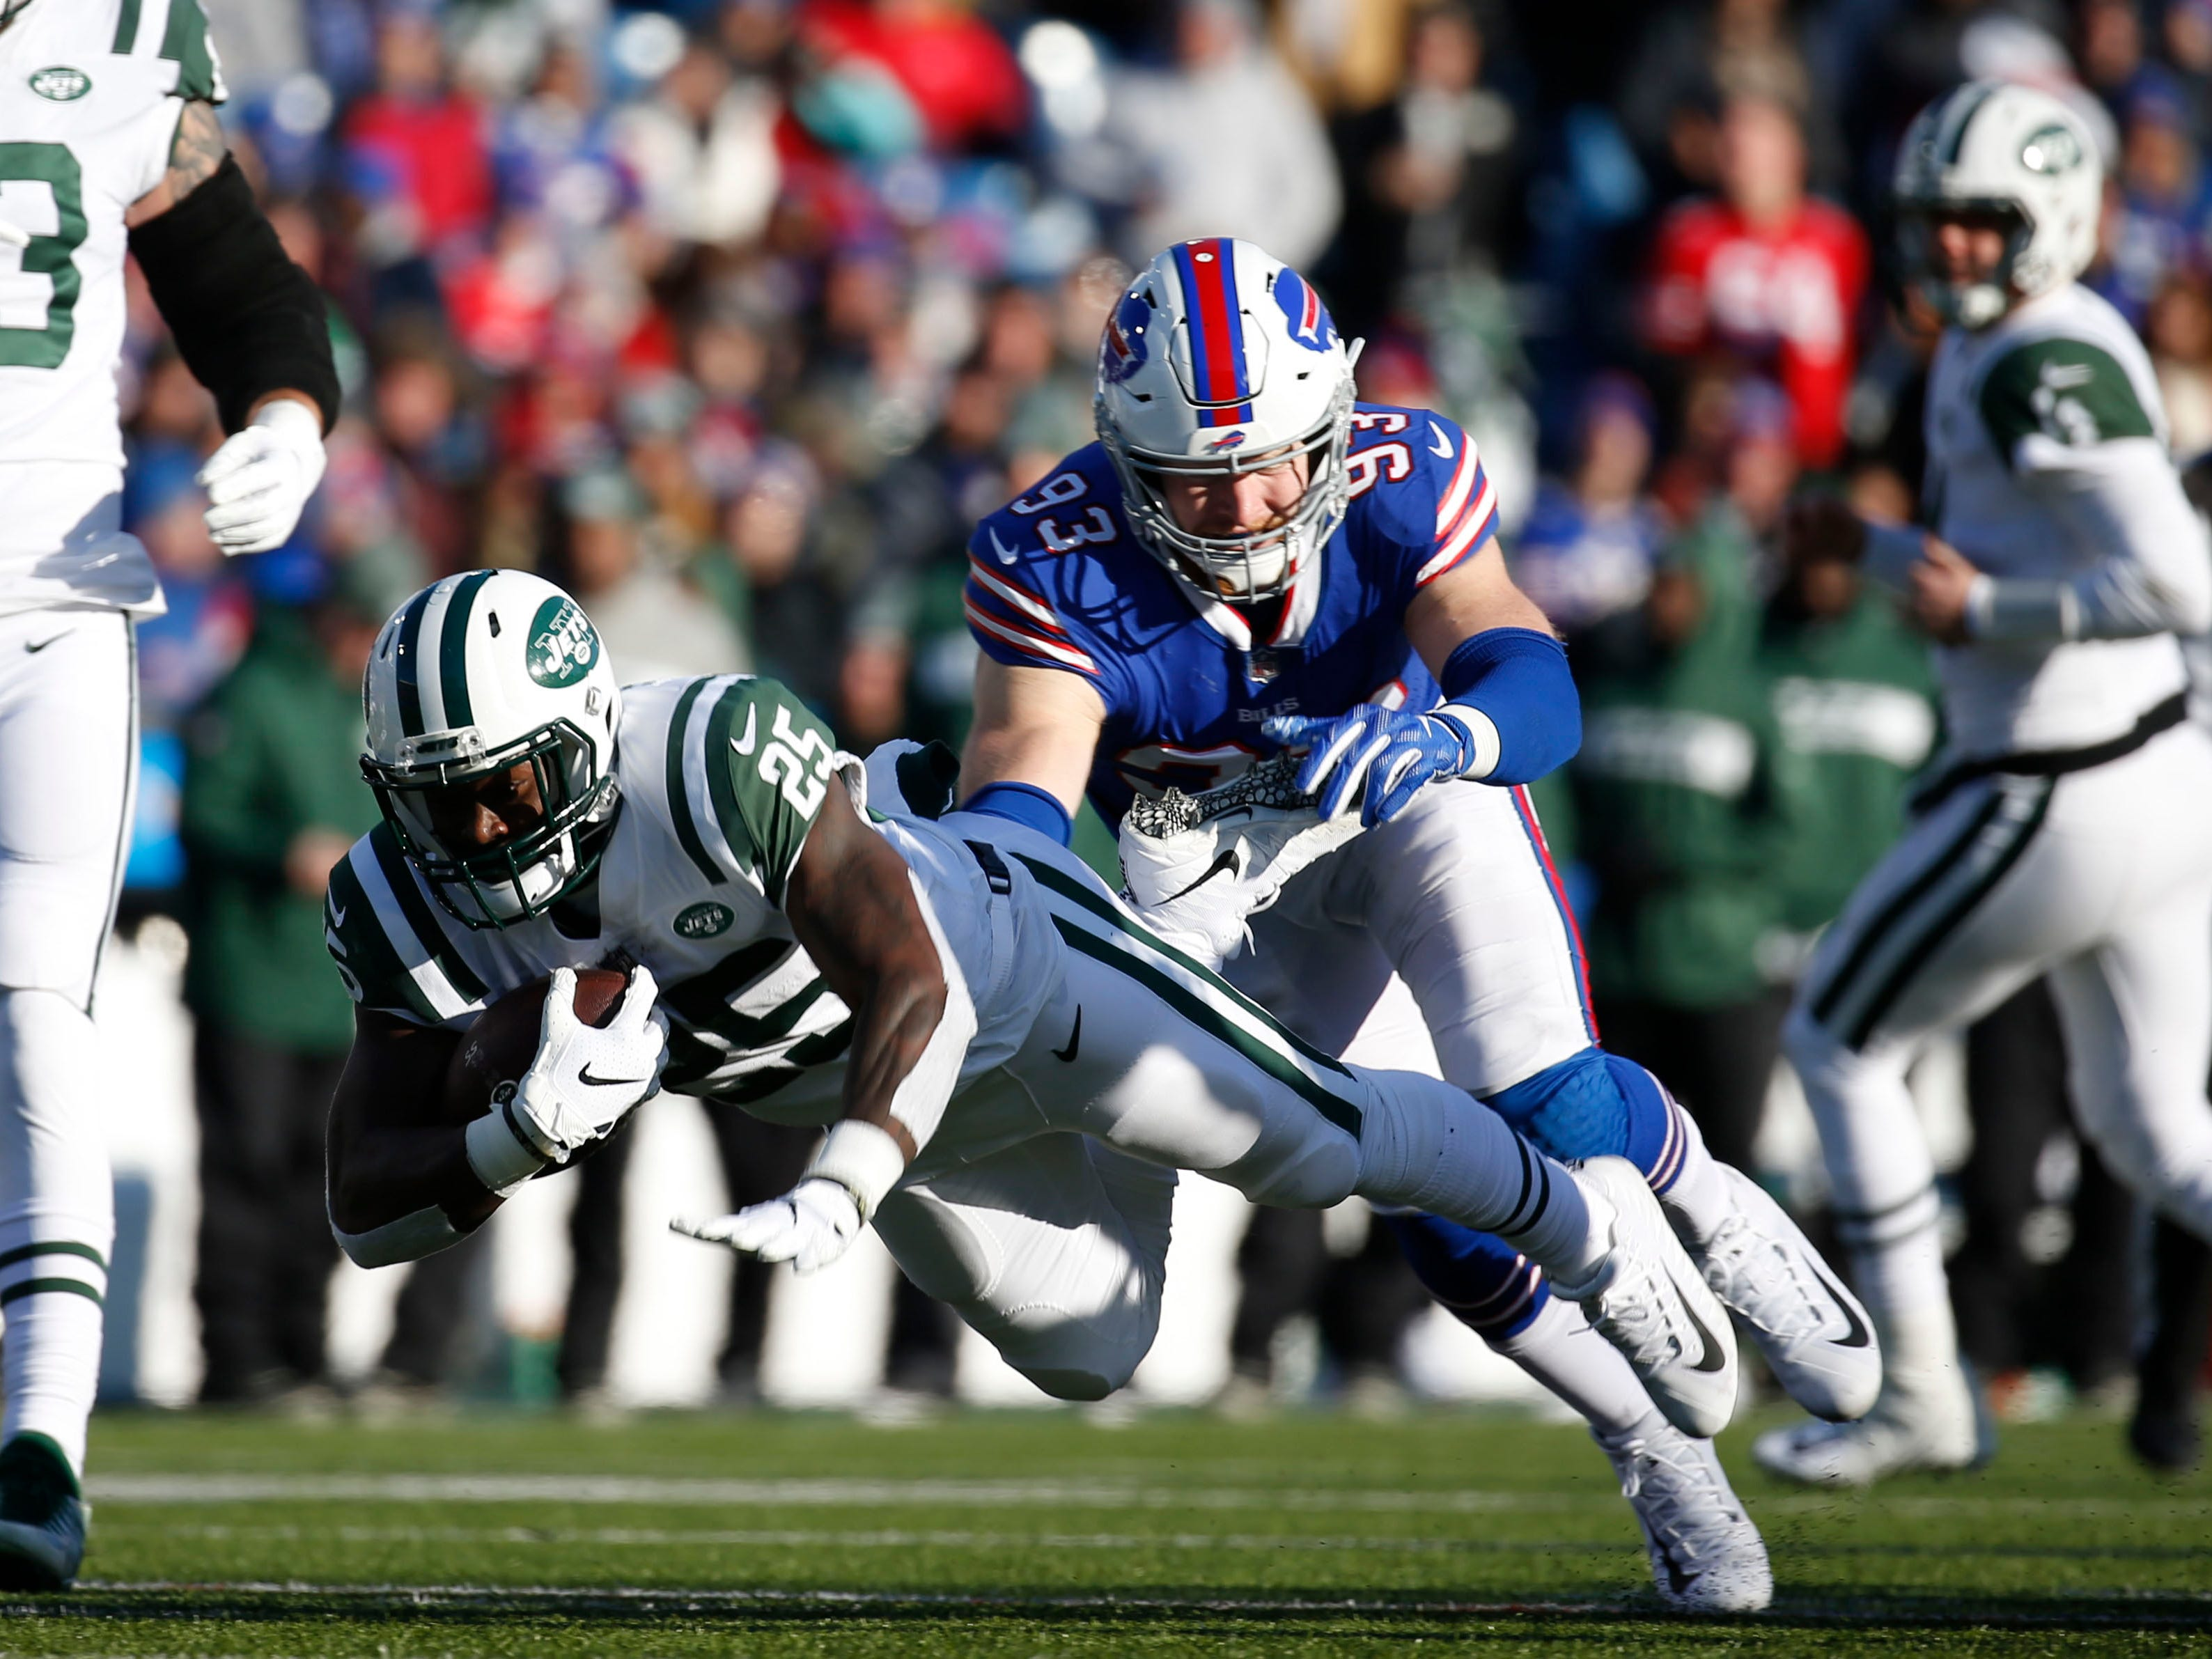 Dec 9, 2018; Orchard Park, NY, USA; New York Jets running back Elijah McGuire (25) runs the ball and gets tackled by Buffalo Bills defensive end Trent Murphy (93) during the first half at New Era Field. Mandatory Credit: Timothy T. Ludwig-USA TODAY Sports